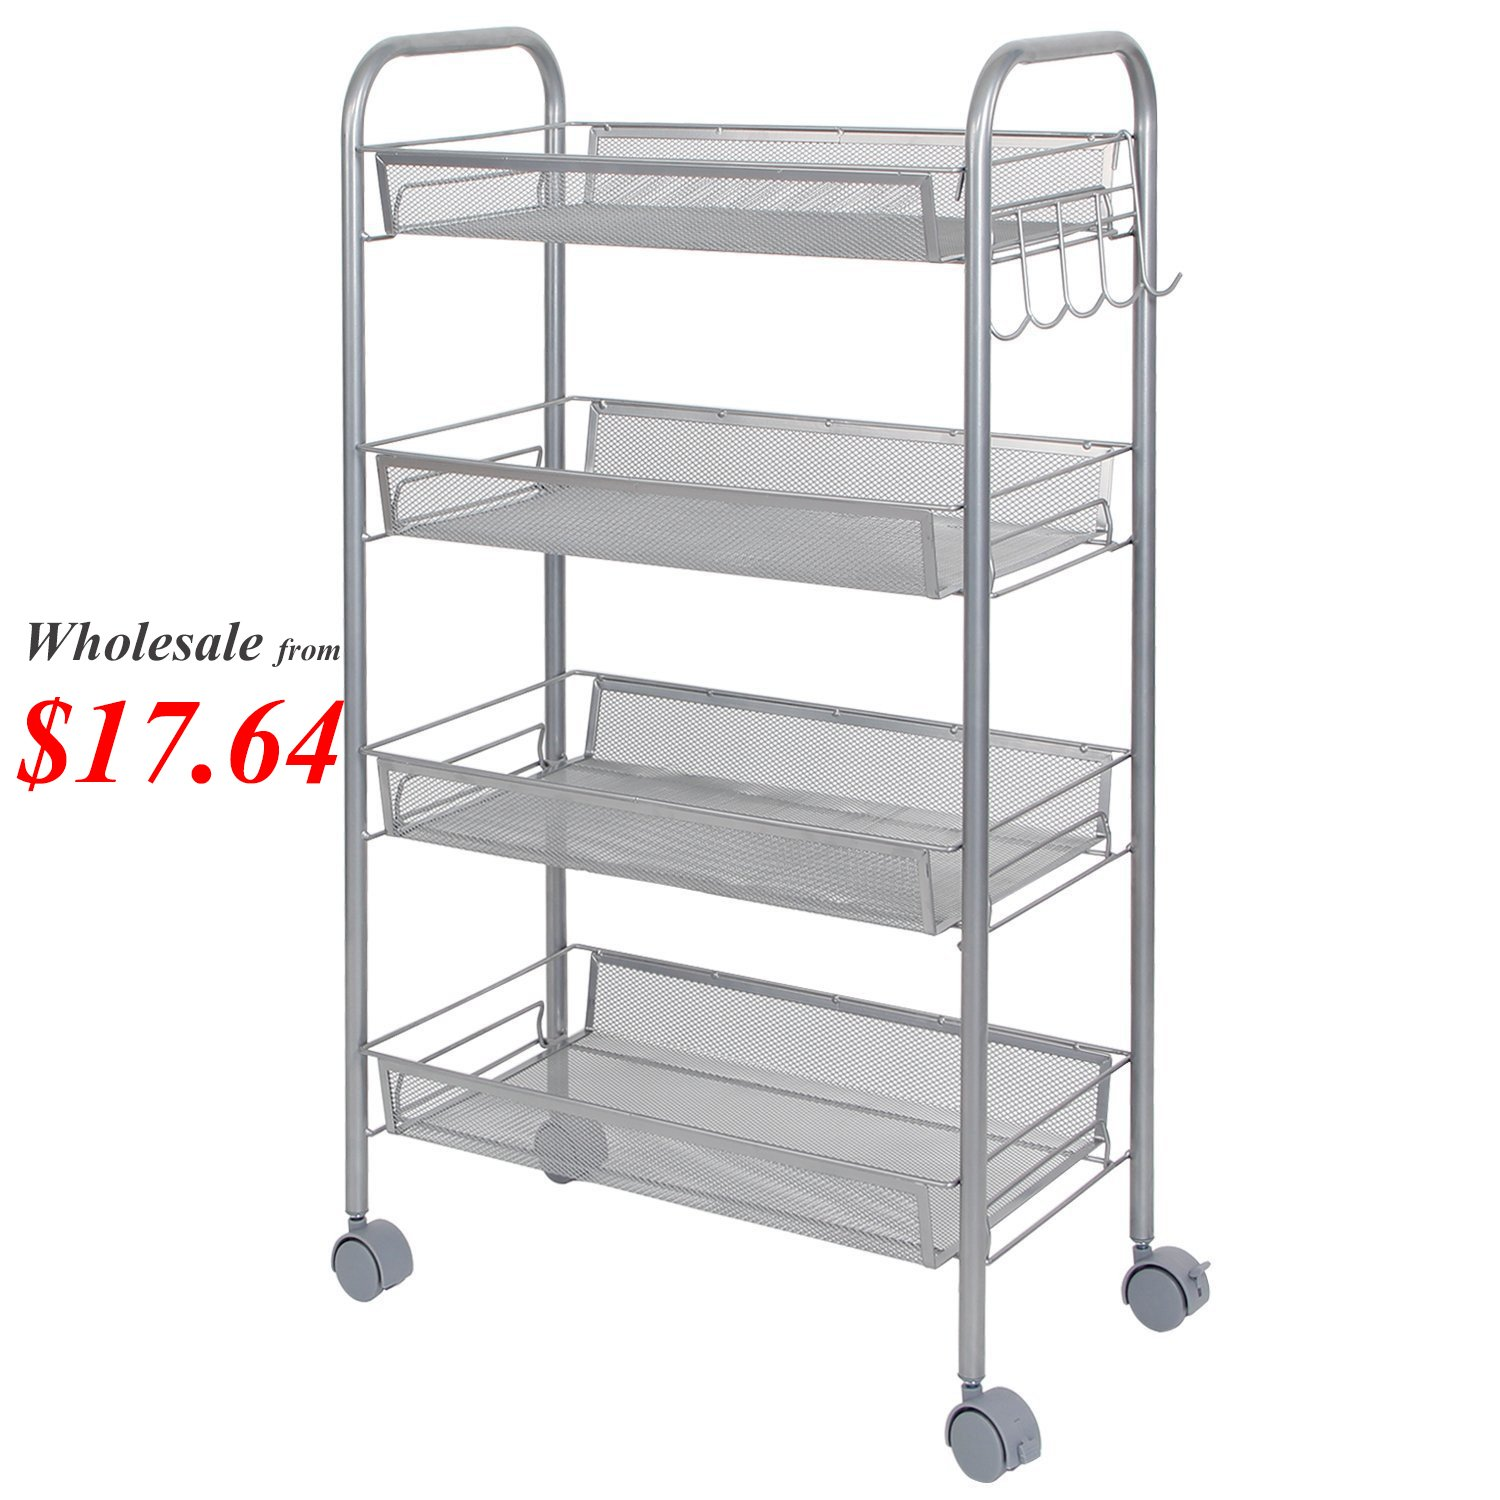 Lifewit Metal Mesh Storage Units Rolling Cart with 4 Shelves